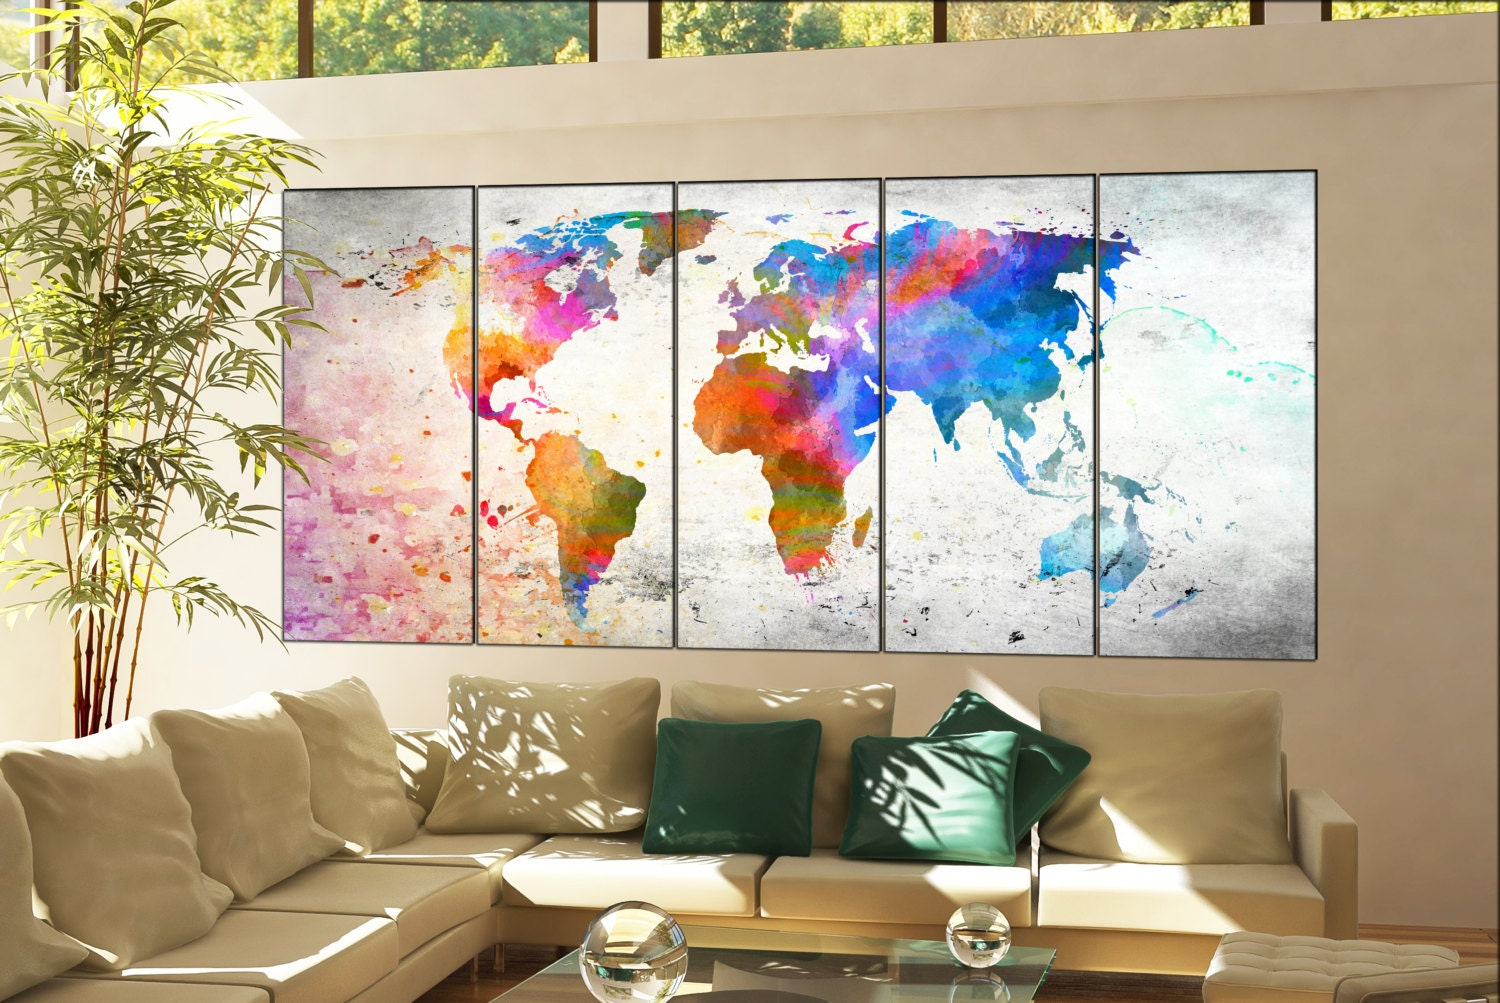 World map print on canvas wall art world map decor print artwork world map print on canvas wall art world map decor print artwork large world map home office decoration 5 panel gumiabroncs Images